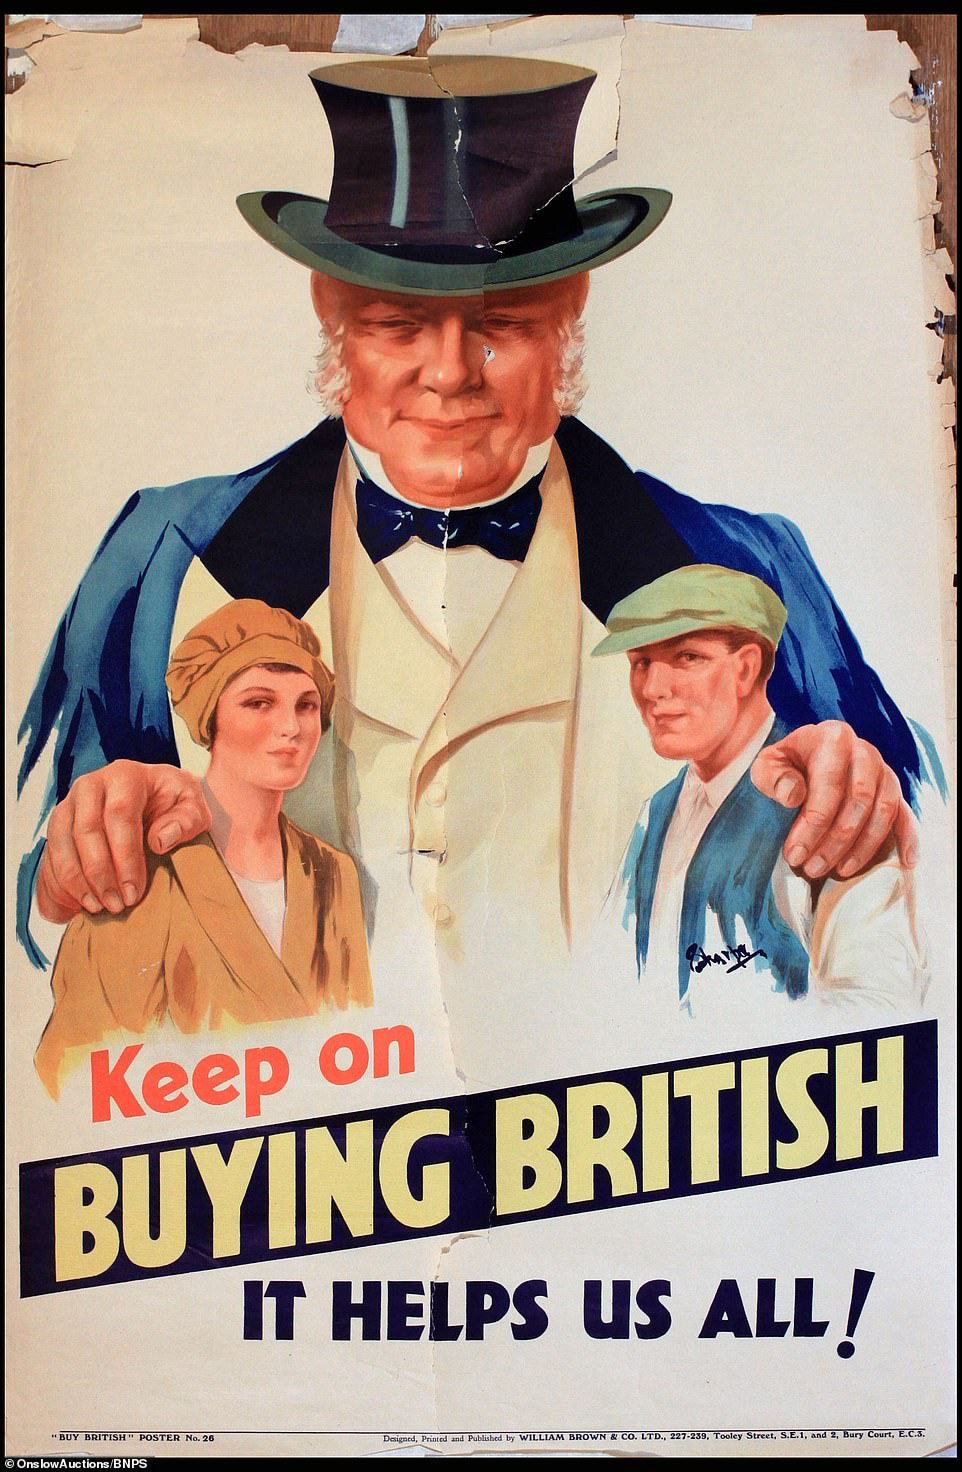 The last poster in the advertising series urged Britons to 'keep on buying British, it helps us all'. A John Bull-type figure was utilised for the last posters, just as it was in the first